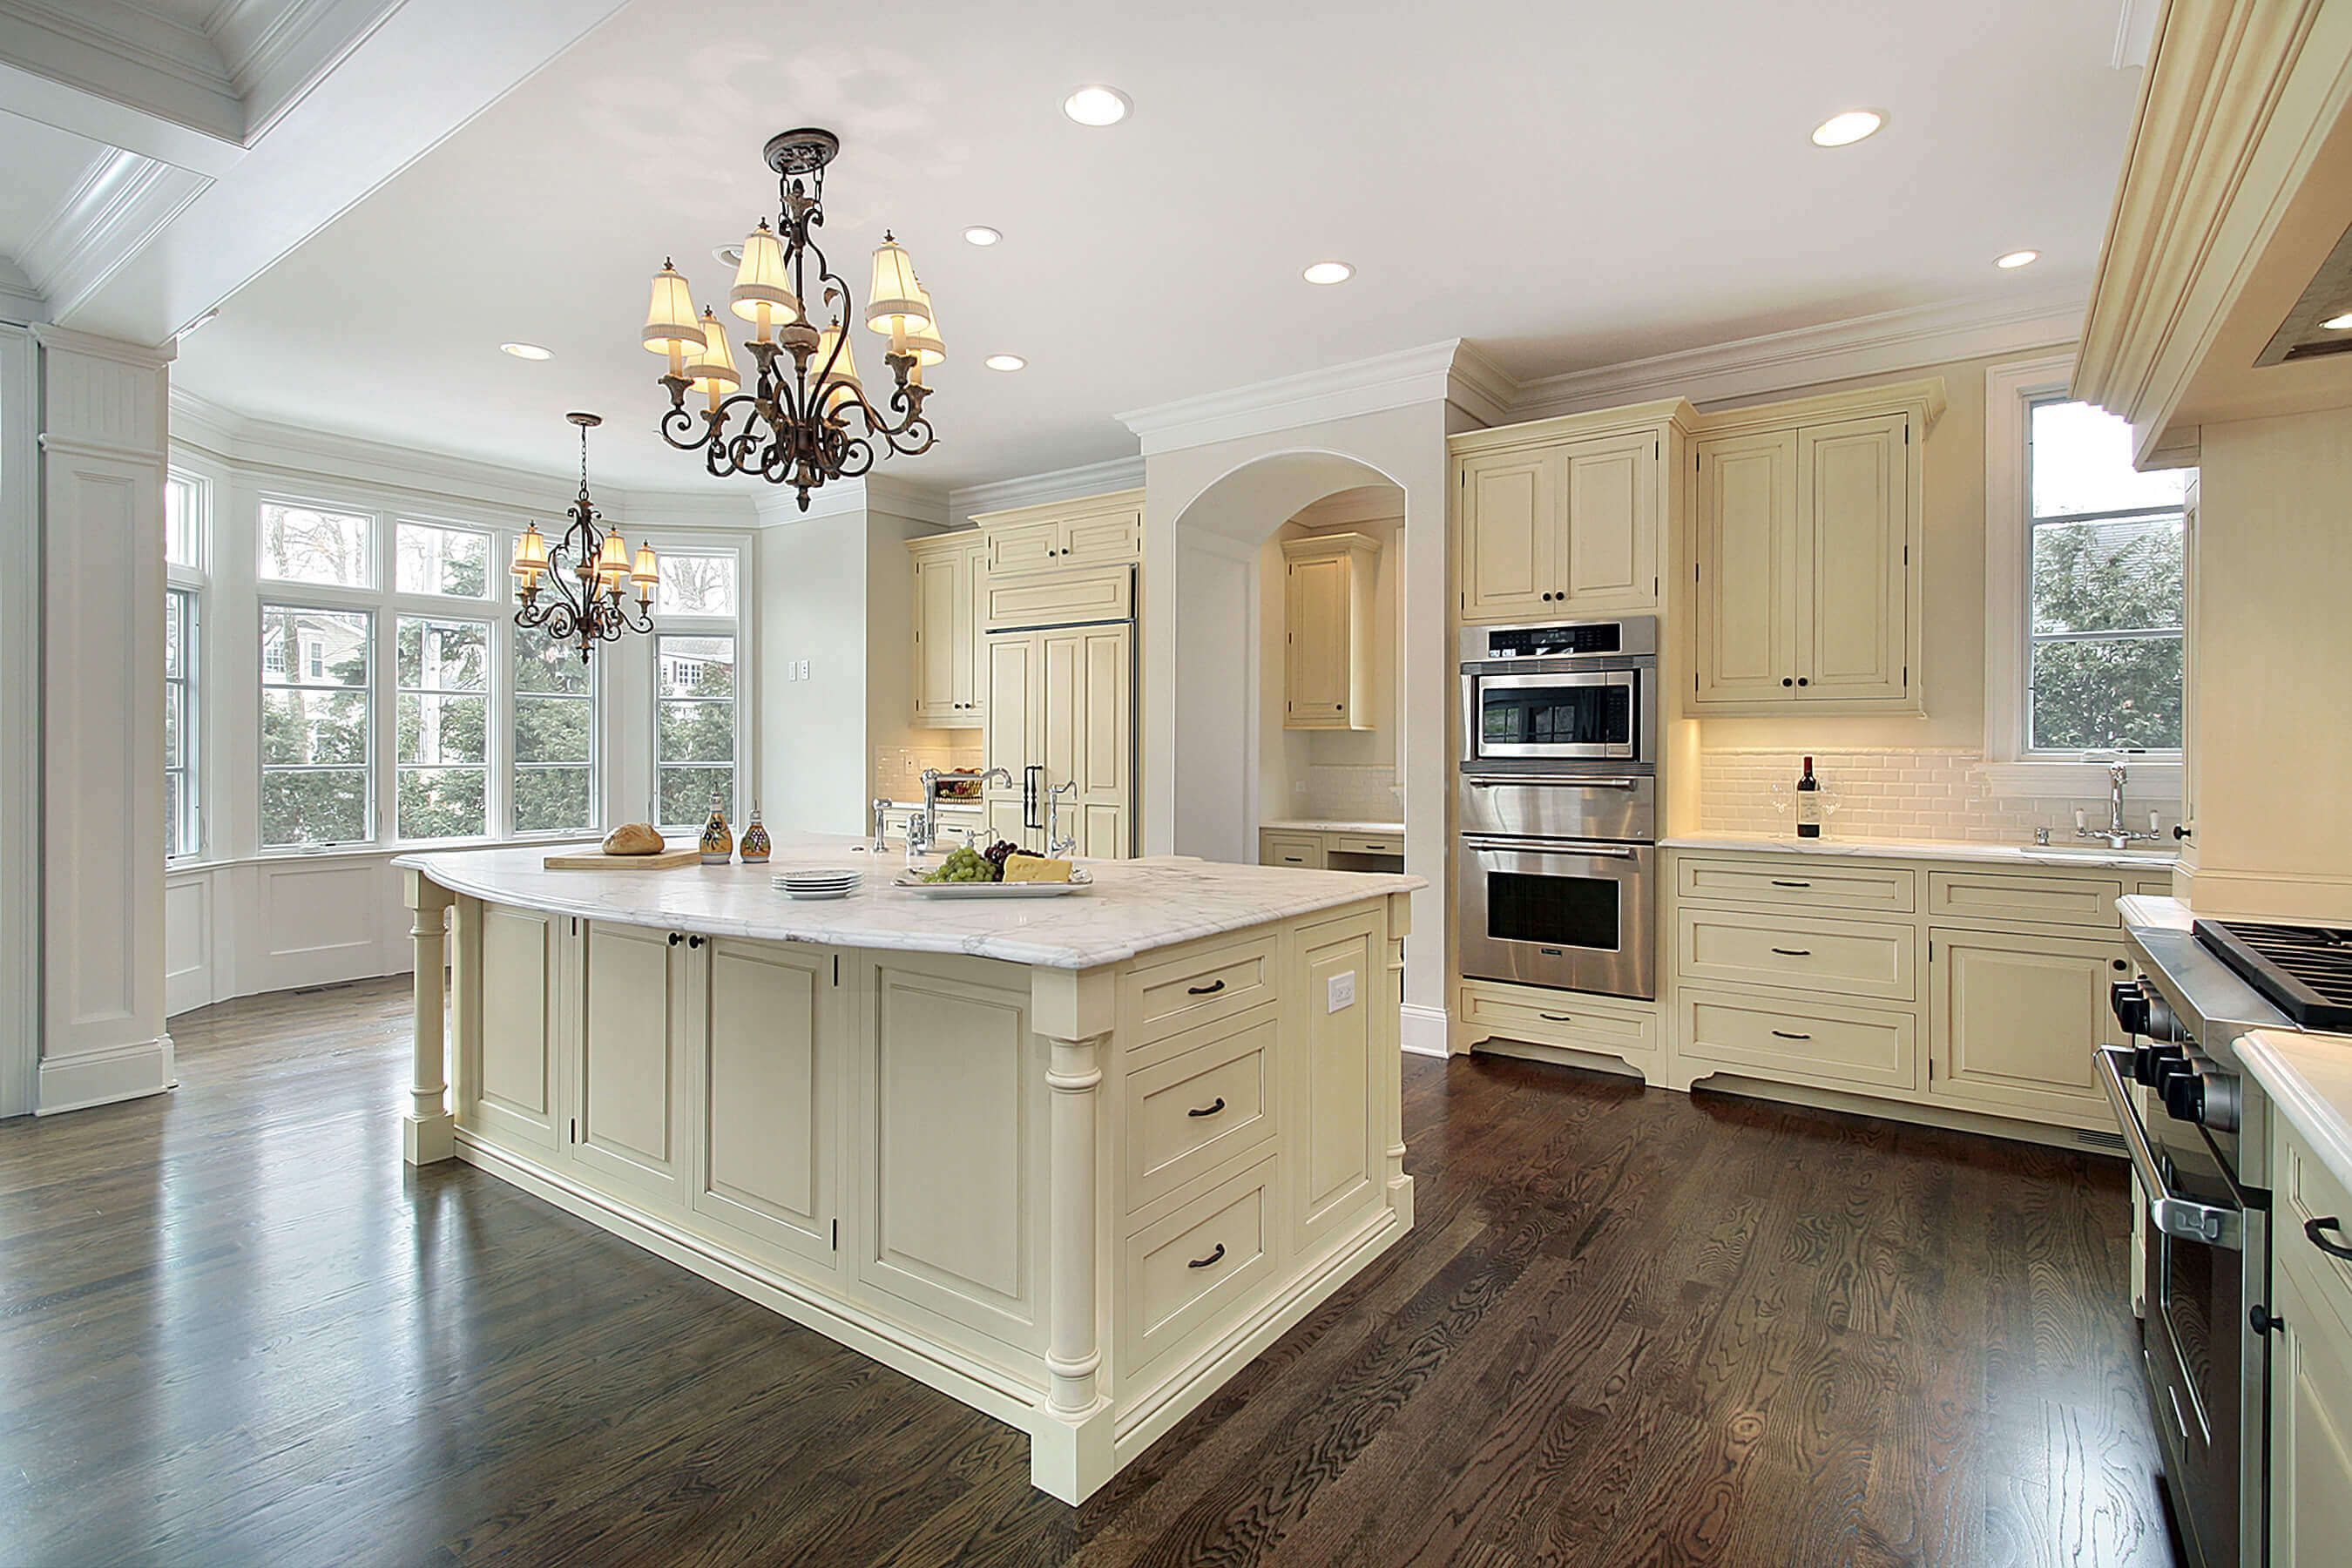 78 Great Looking Modern Kitchen Gallery Sinks Islands Appliances Lights Backsplashes Cabinets Floors And More Antique White Kitchen Antique White Kitchen Cabinets Off White Kitchen Cabinets